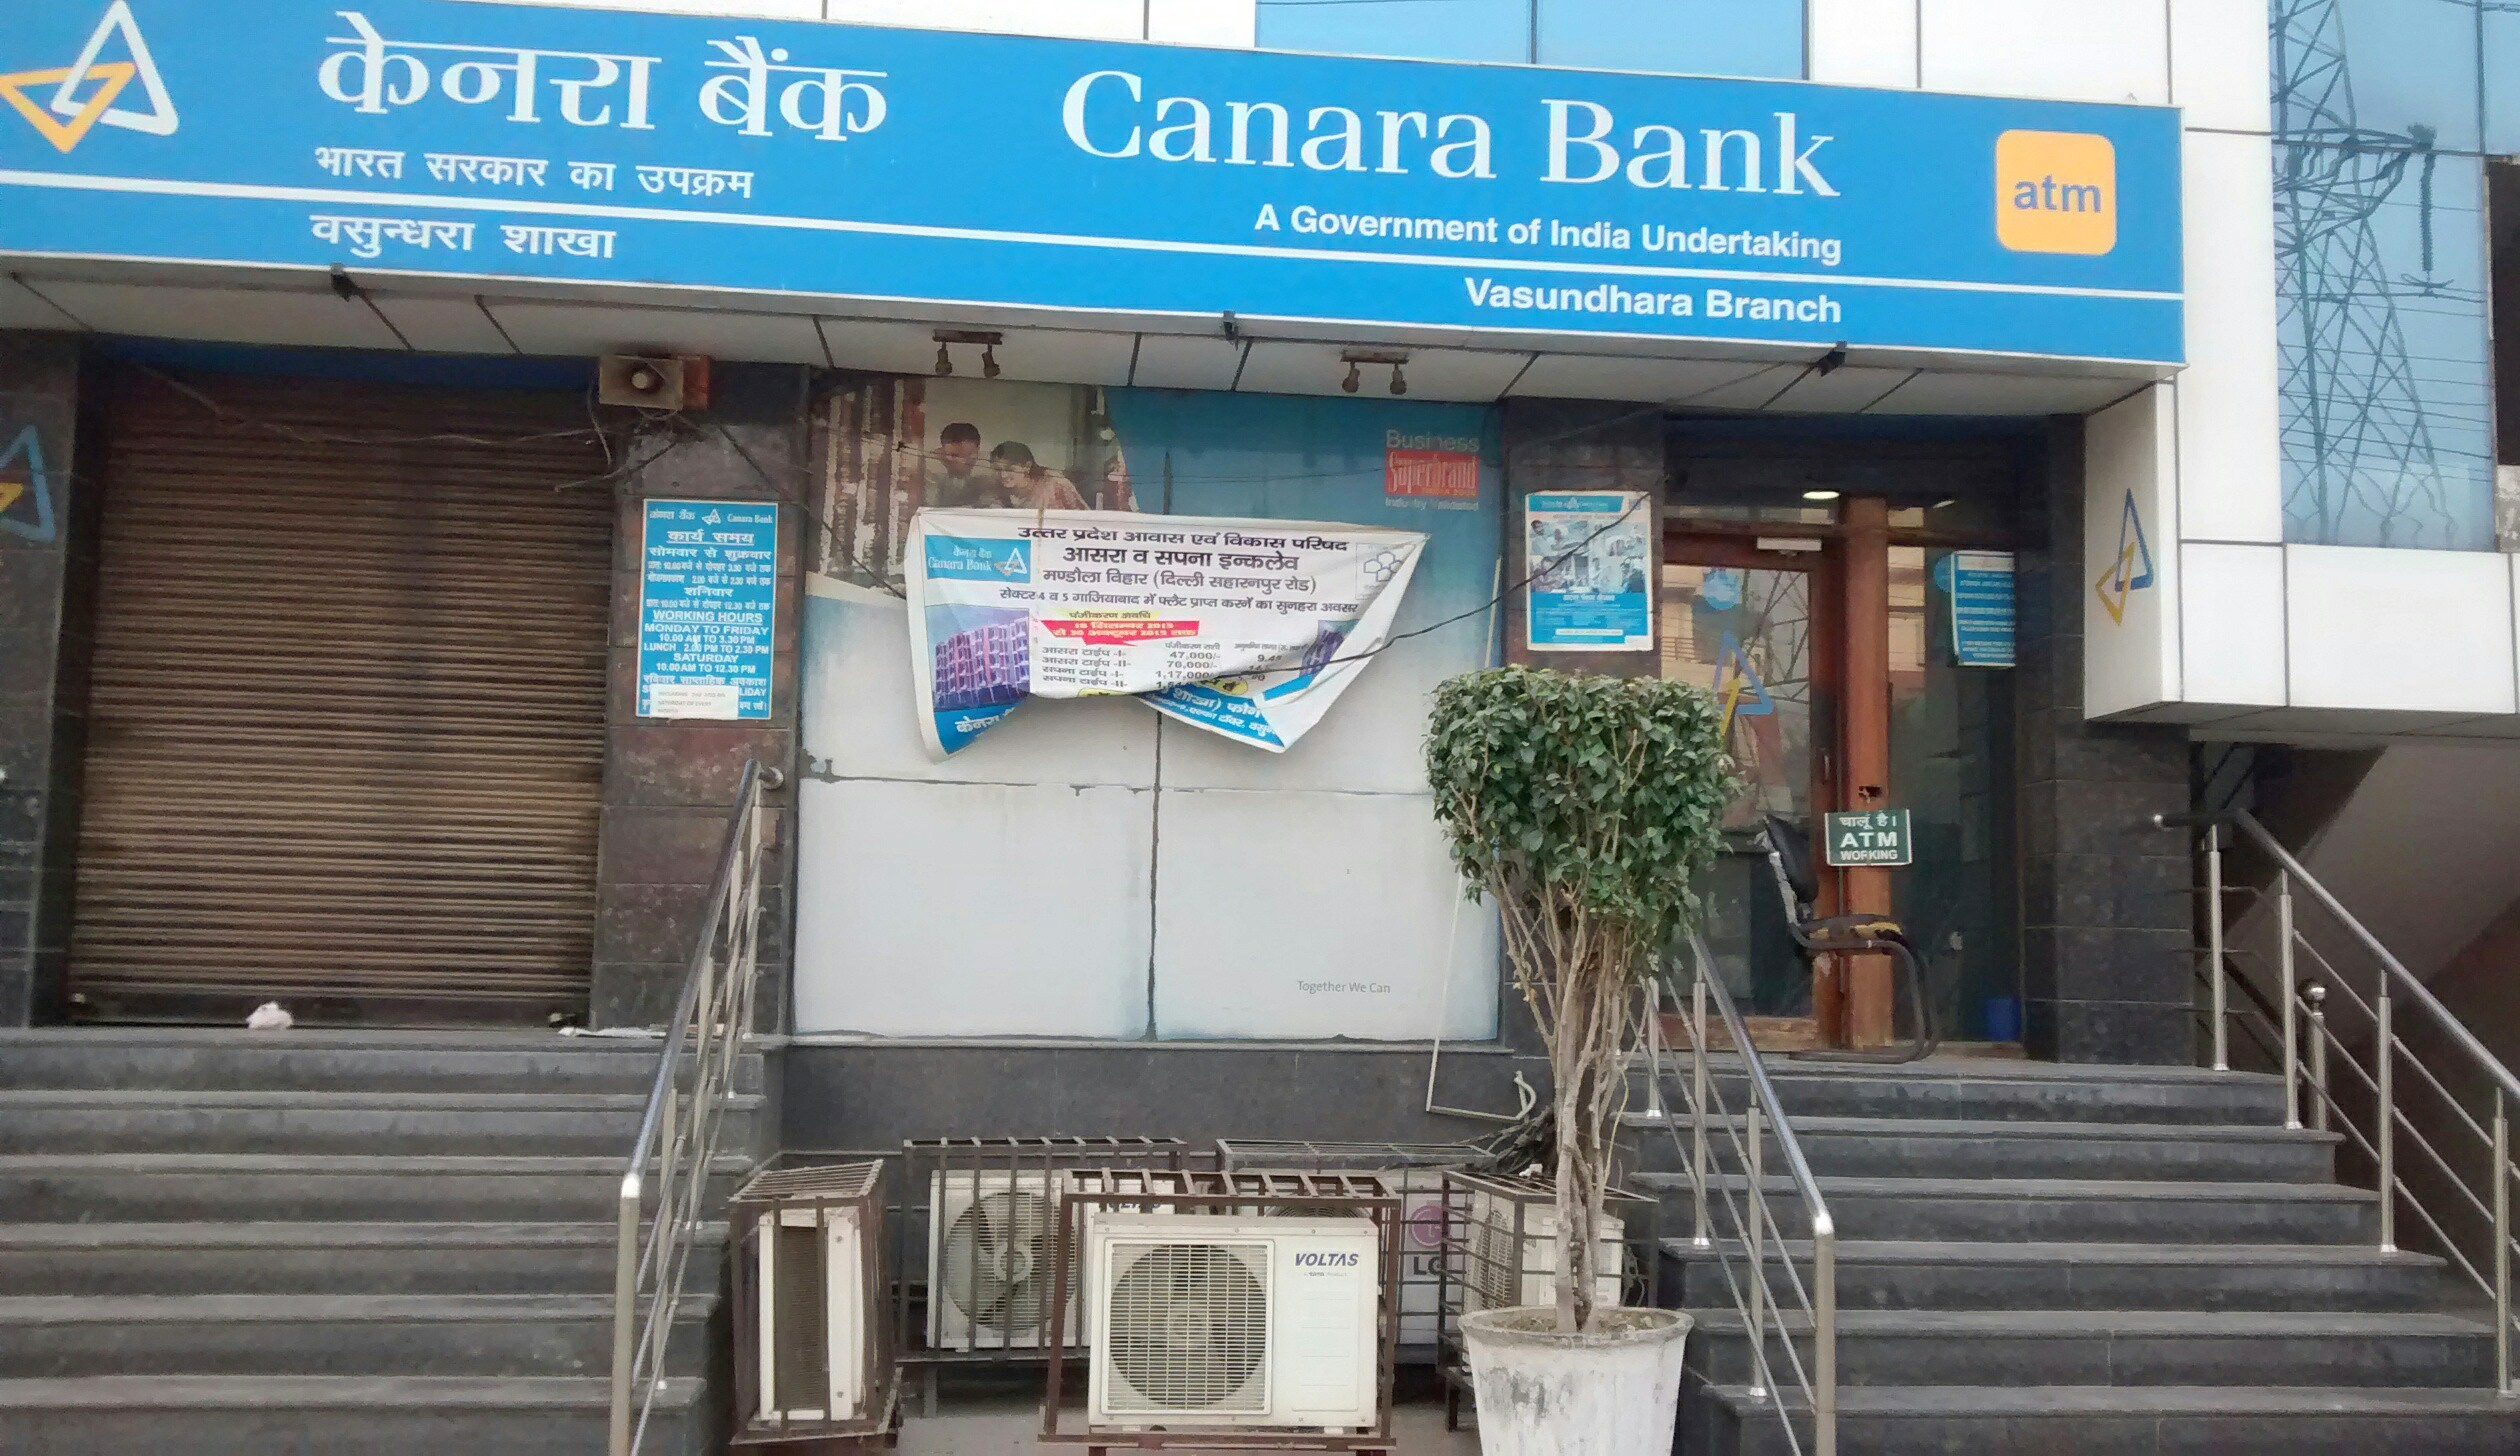 Complained many times of no ramp at main branch & ATM of Canara Bank at SG Alpha tower, Vasundhara